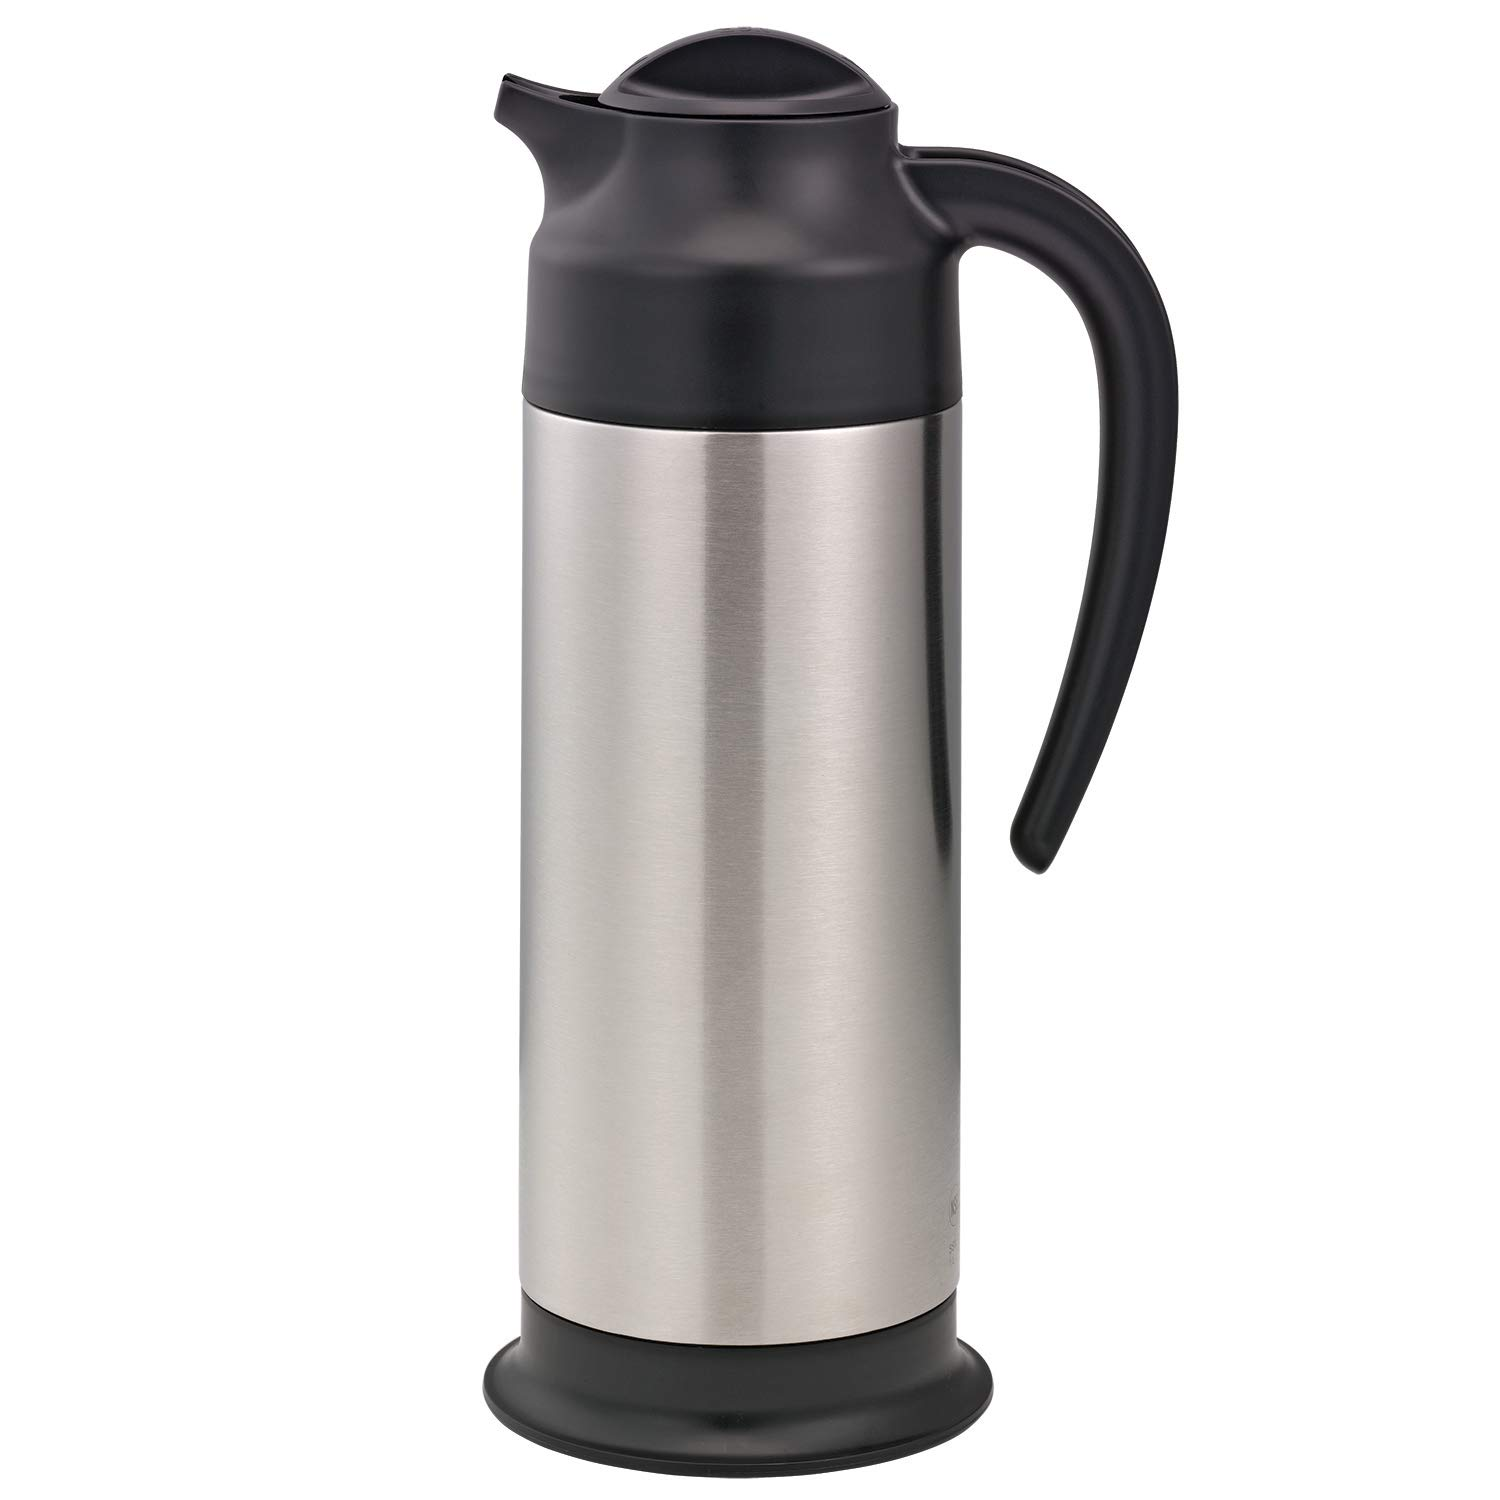 Service Ideas SSN100 SteelVac Carafe, 1 L (23.7 oz.), NSF, Brushed Stainless/Black Base